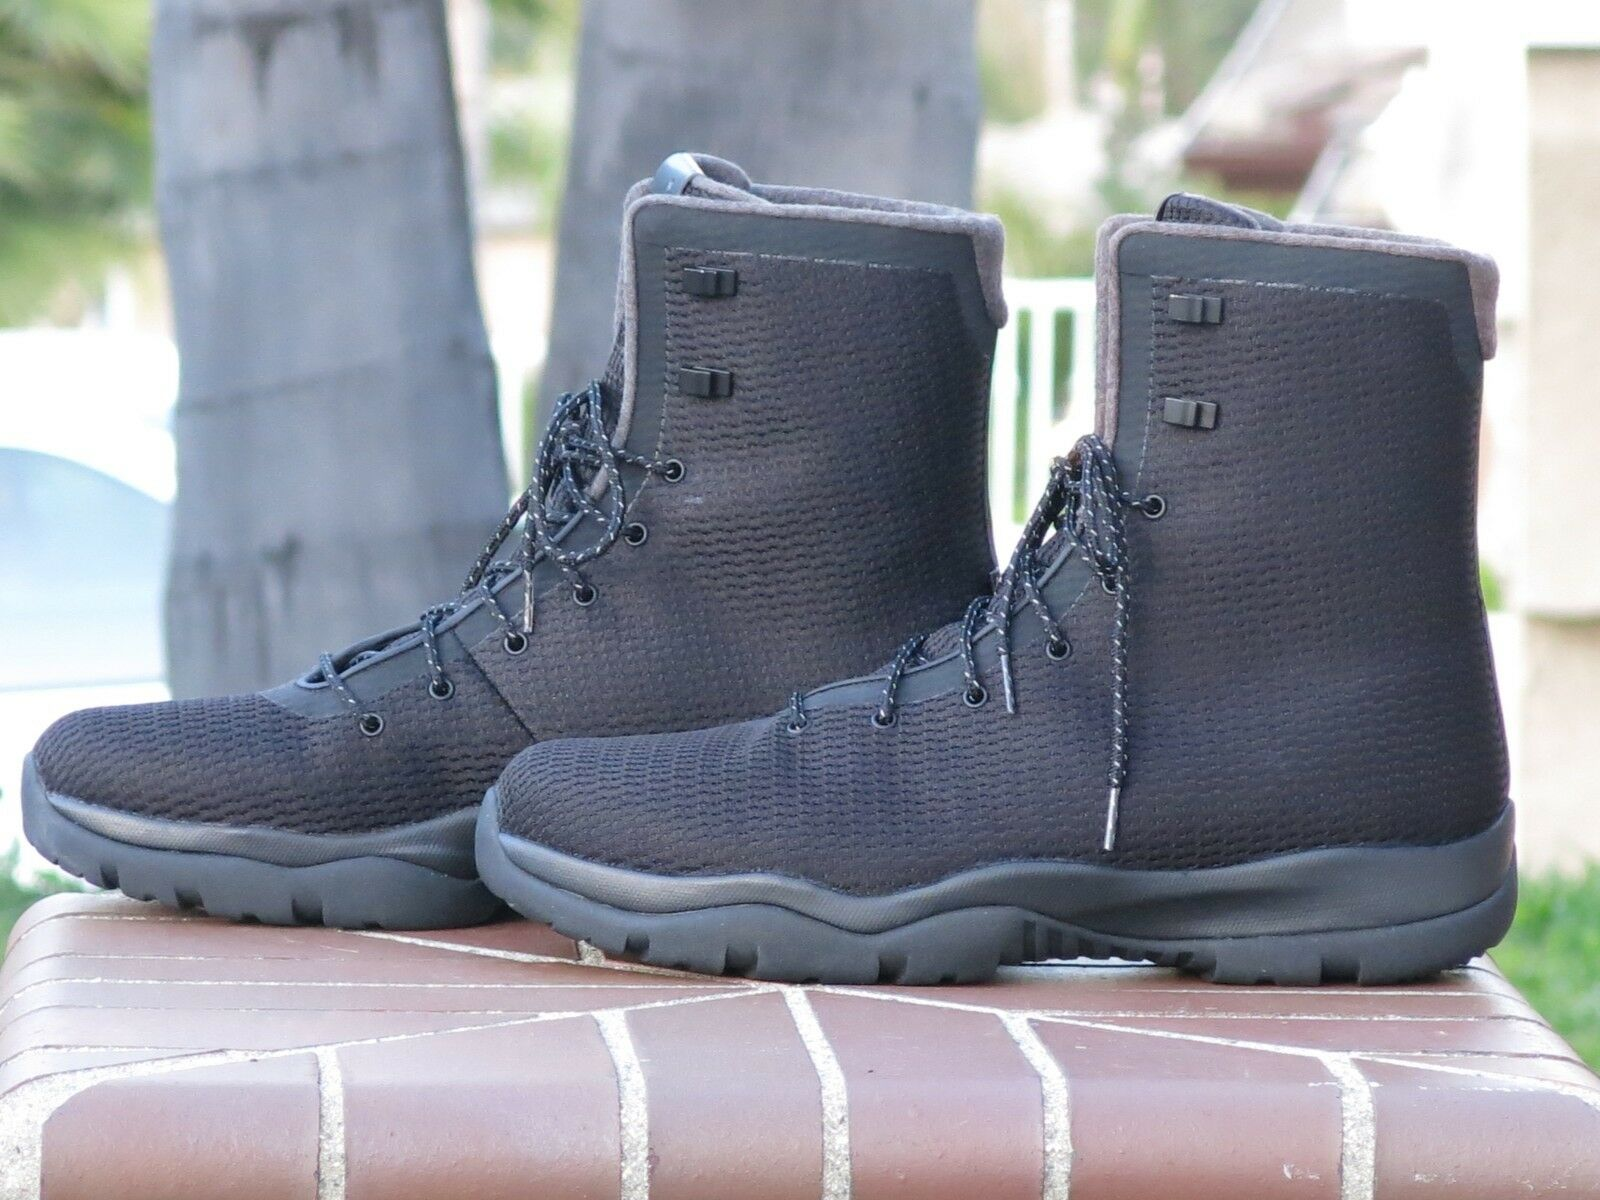 nike jordan future boot mens waterproof winter boots size